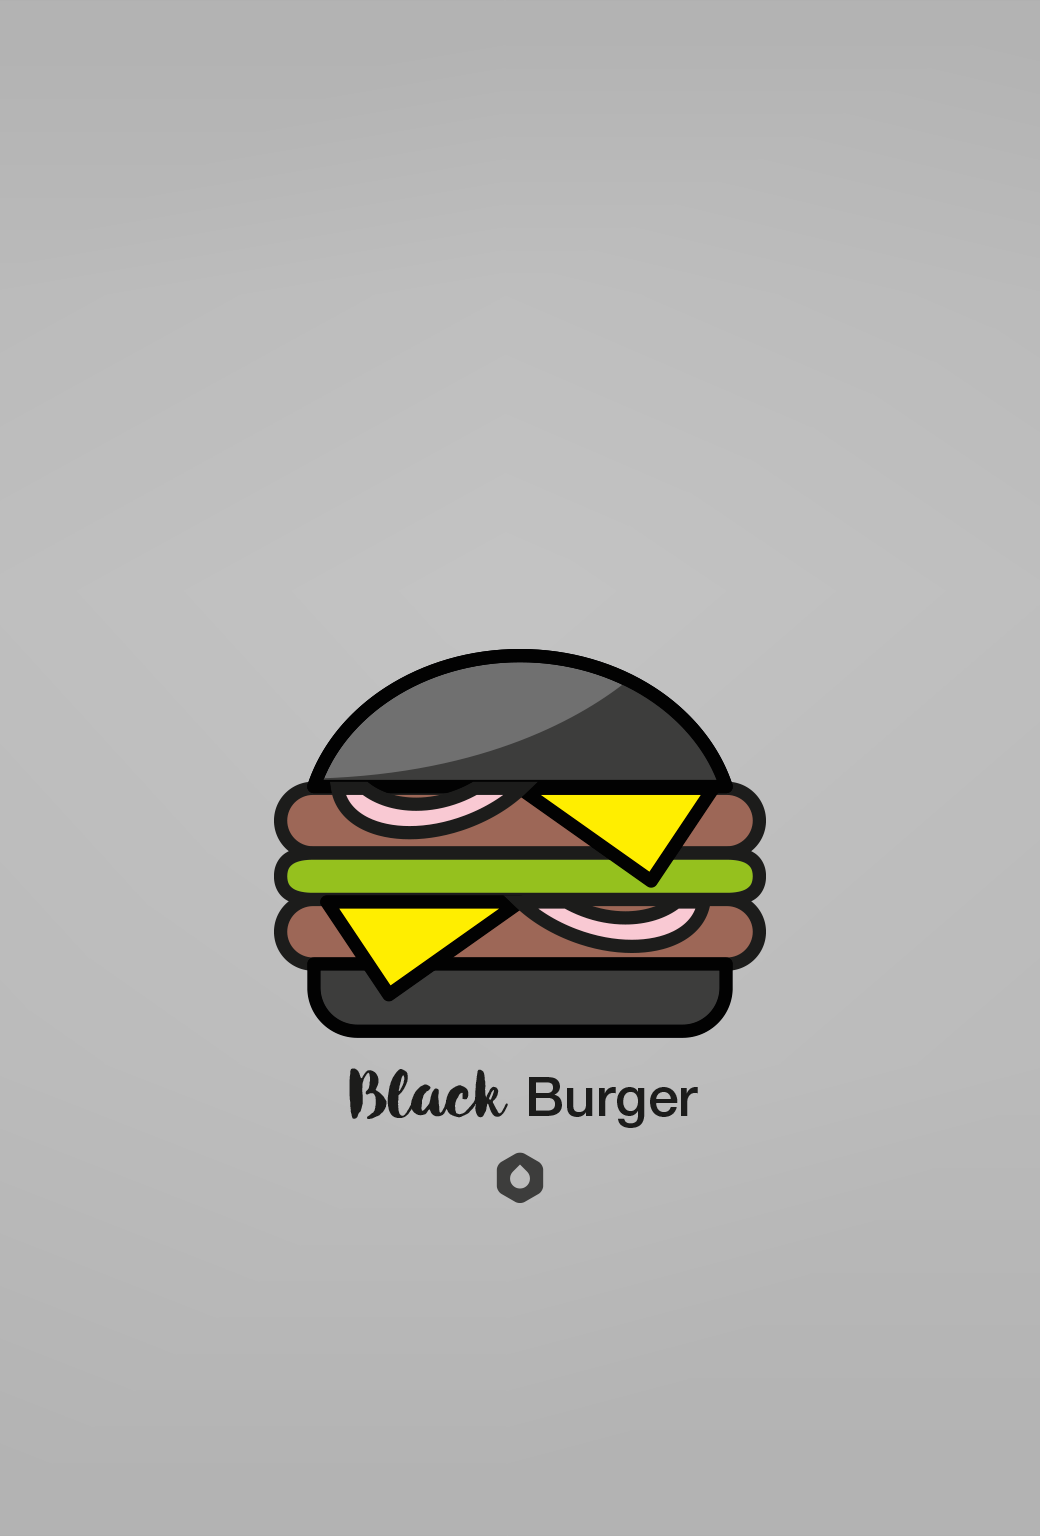 Wallpaper Pick Your Burger - iPhone5 - Black